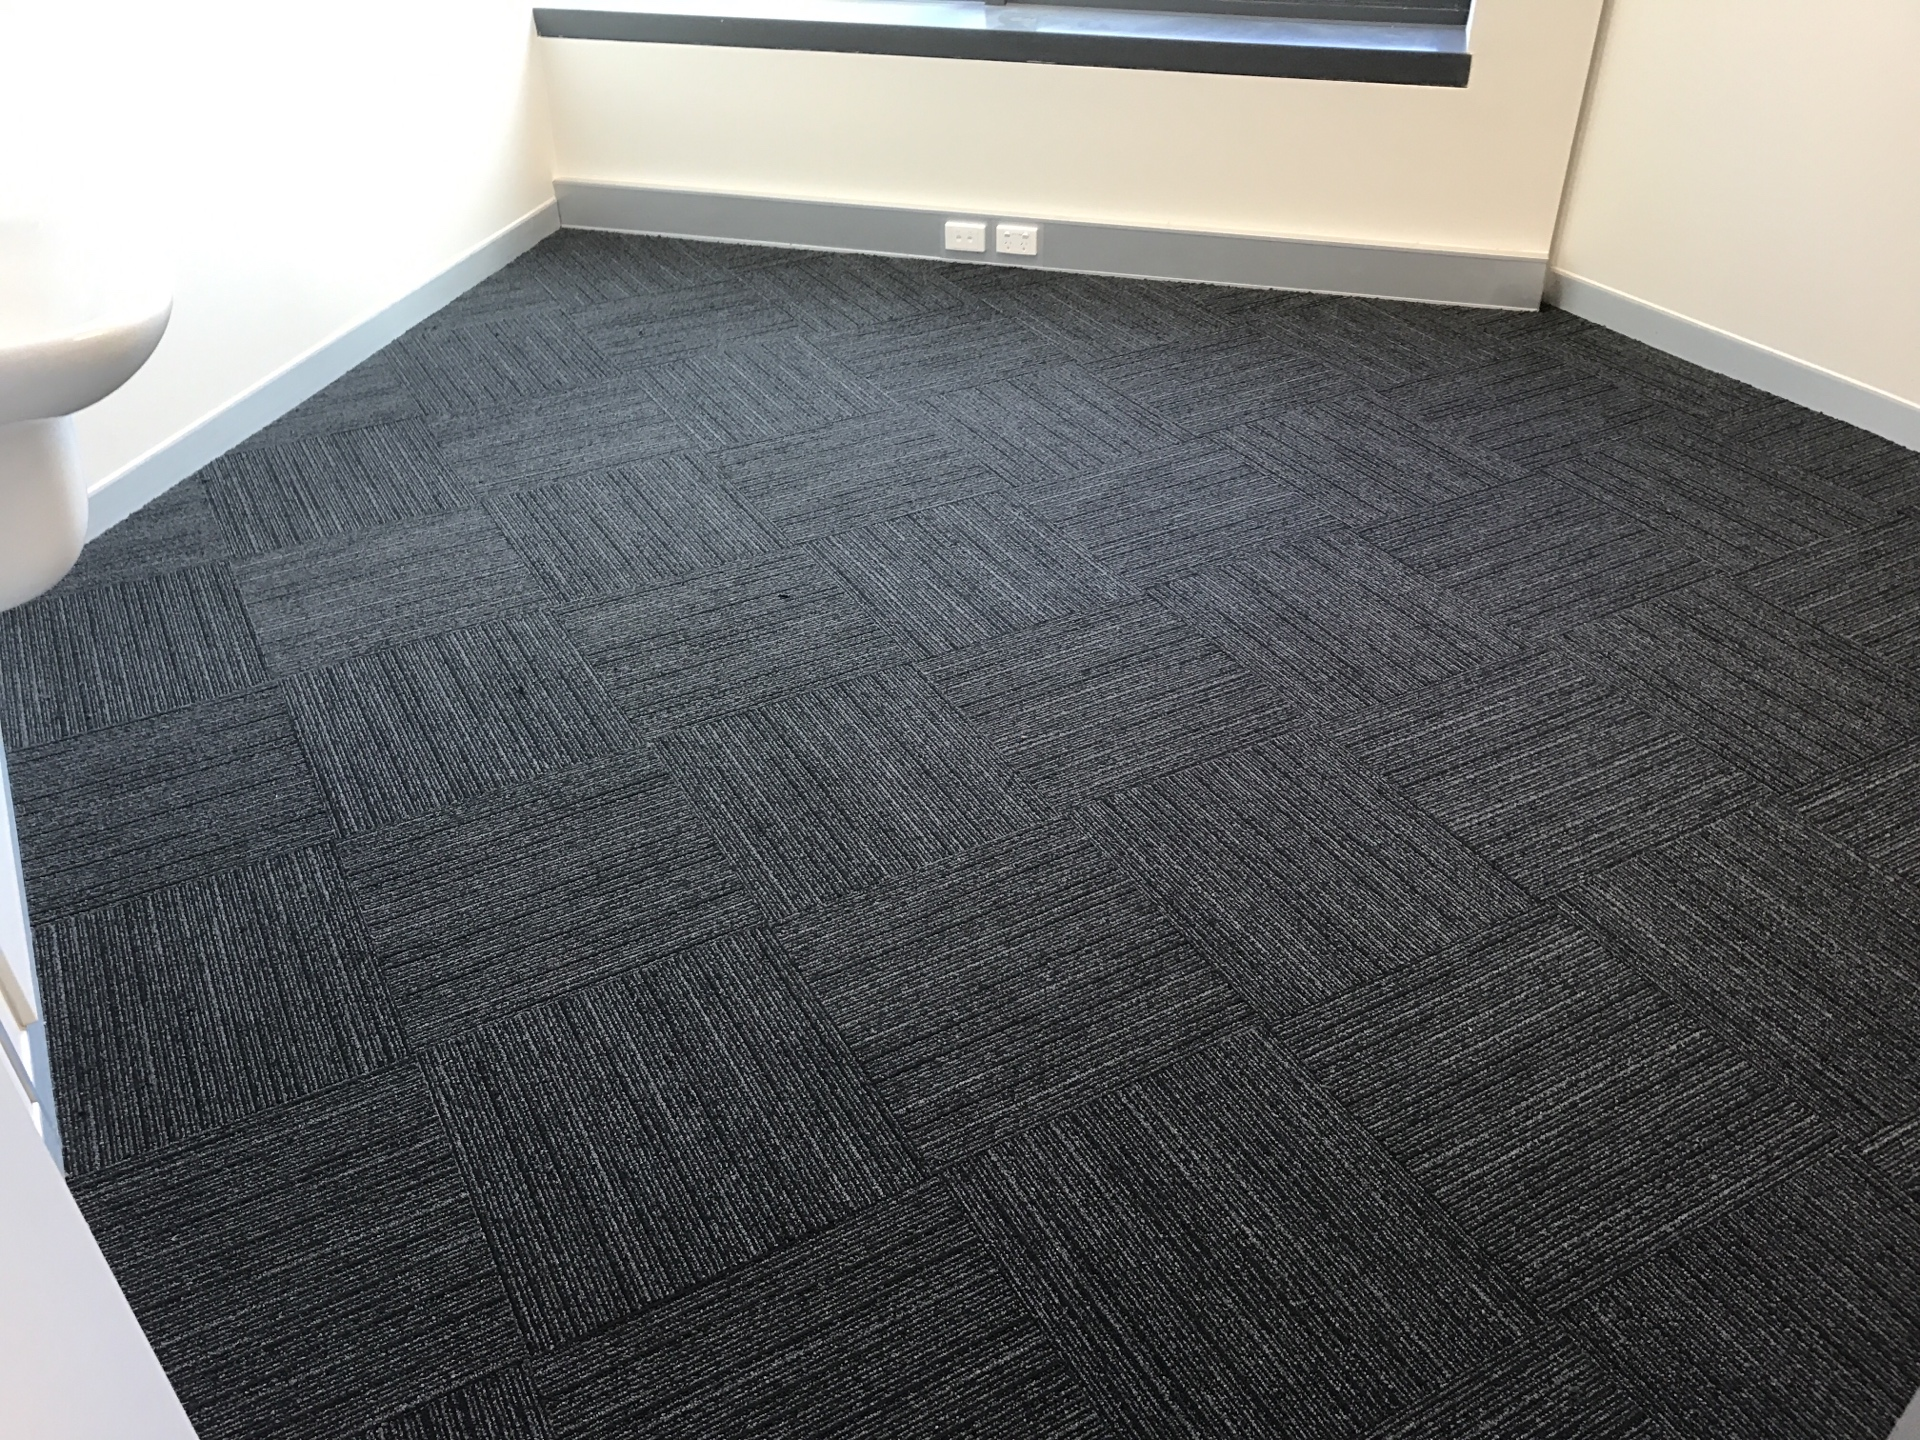 Commercial carpet tiles for your office floorwerx gold coast which is reassuring and overall means carpet tiles are definitely a cost effective flooring option we recommend regular vacuuming it is the best way doublecrazyfo Choice Image